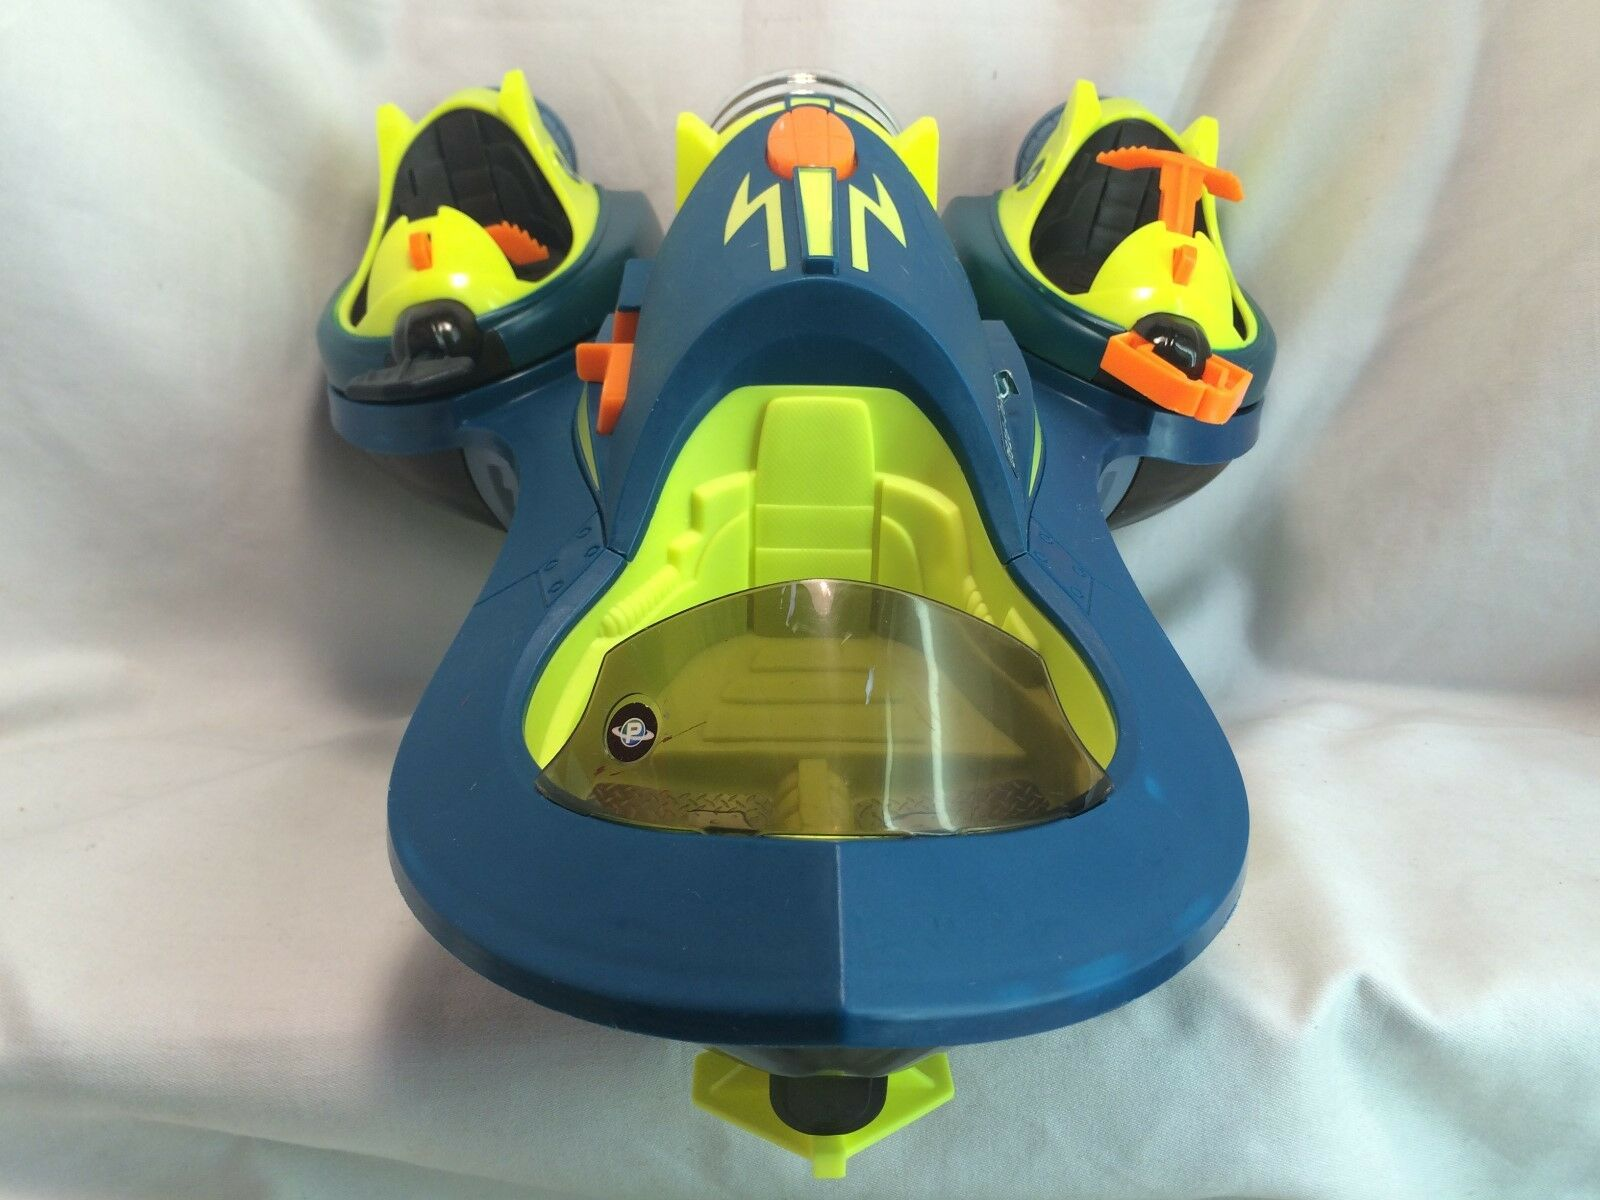 Fisher Price Price Price Planet Heroes bluee orange Green Turbo Shuttle 16  Large Airship b36cab